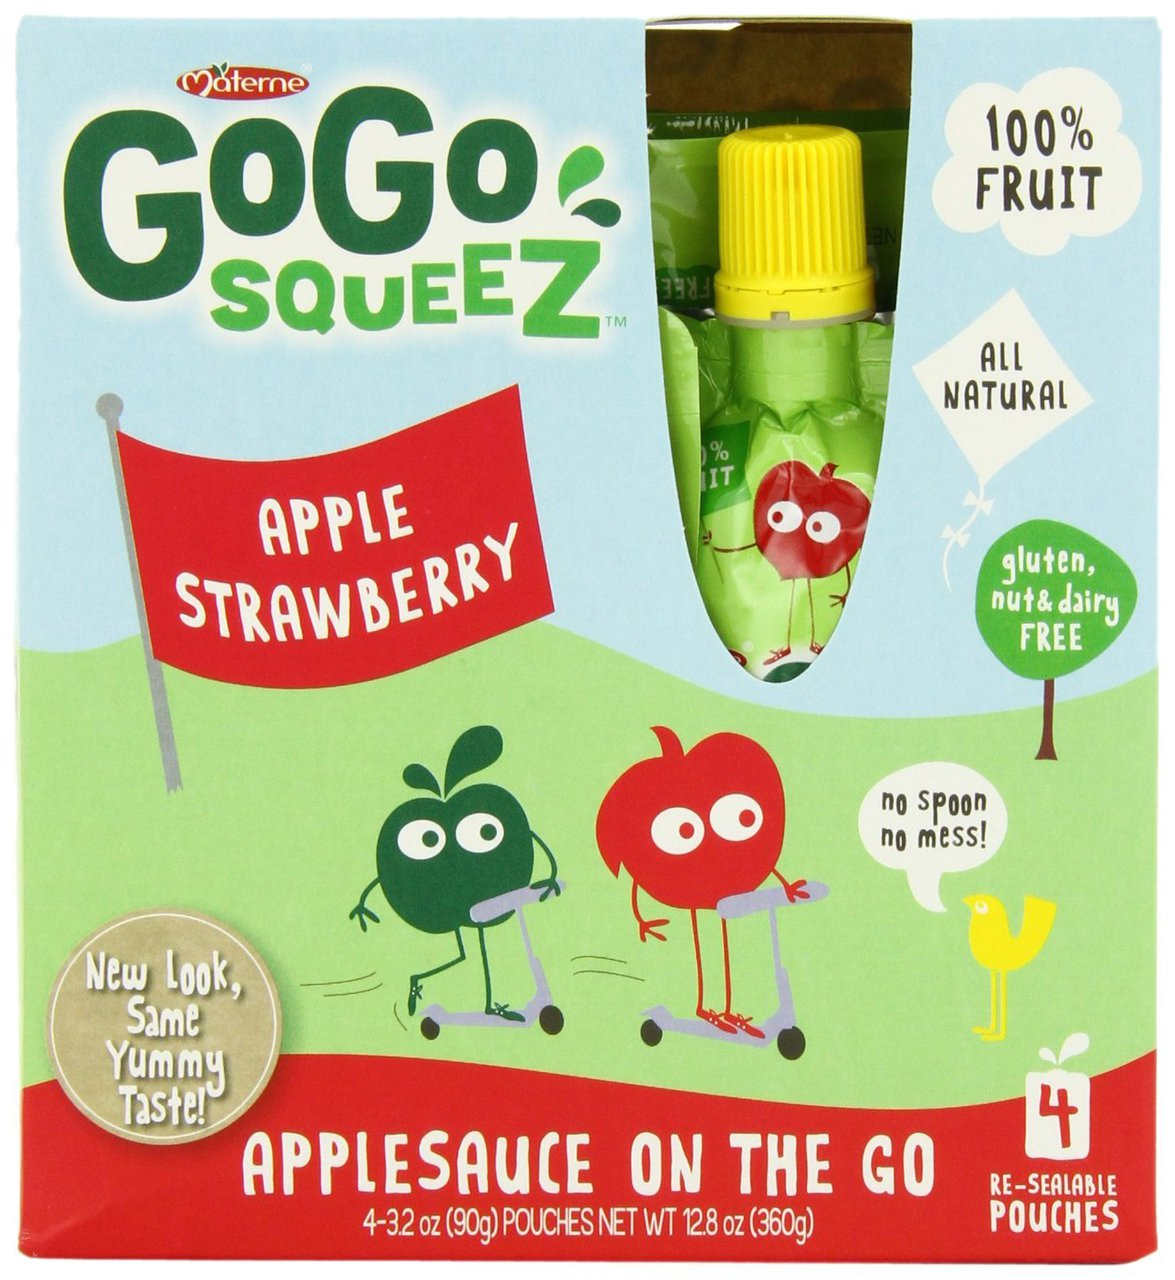 12 PACKS : GoGo SqueeZ Apple/Strawberry, Applesauce on the Go, 3.2-Ounce Pouches